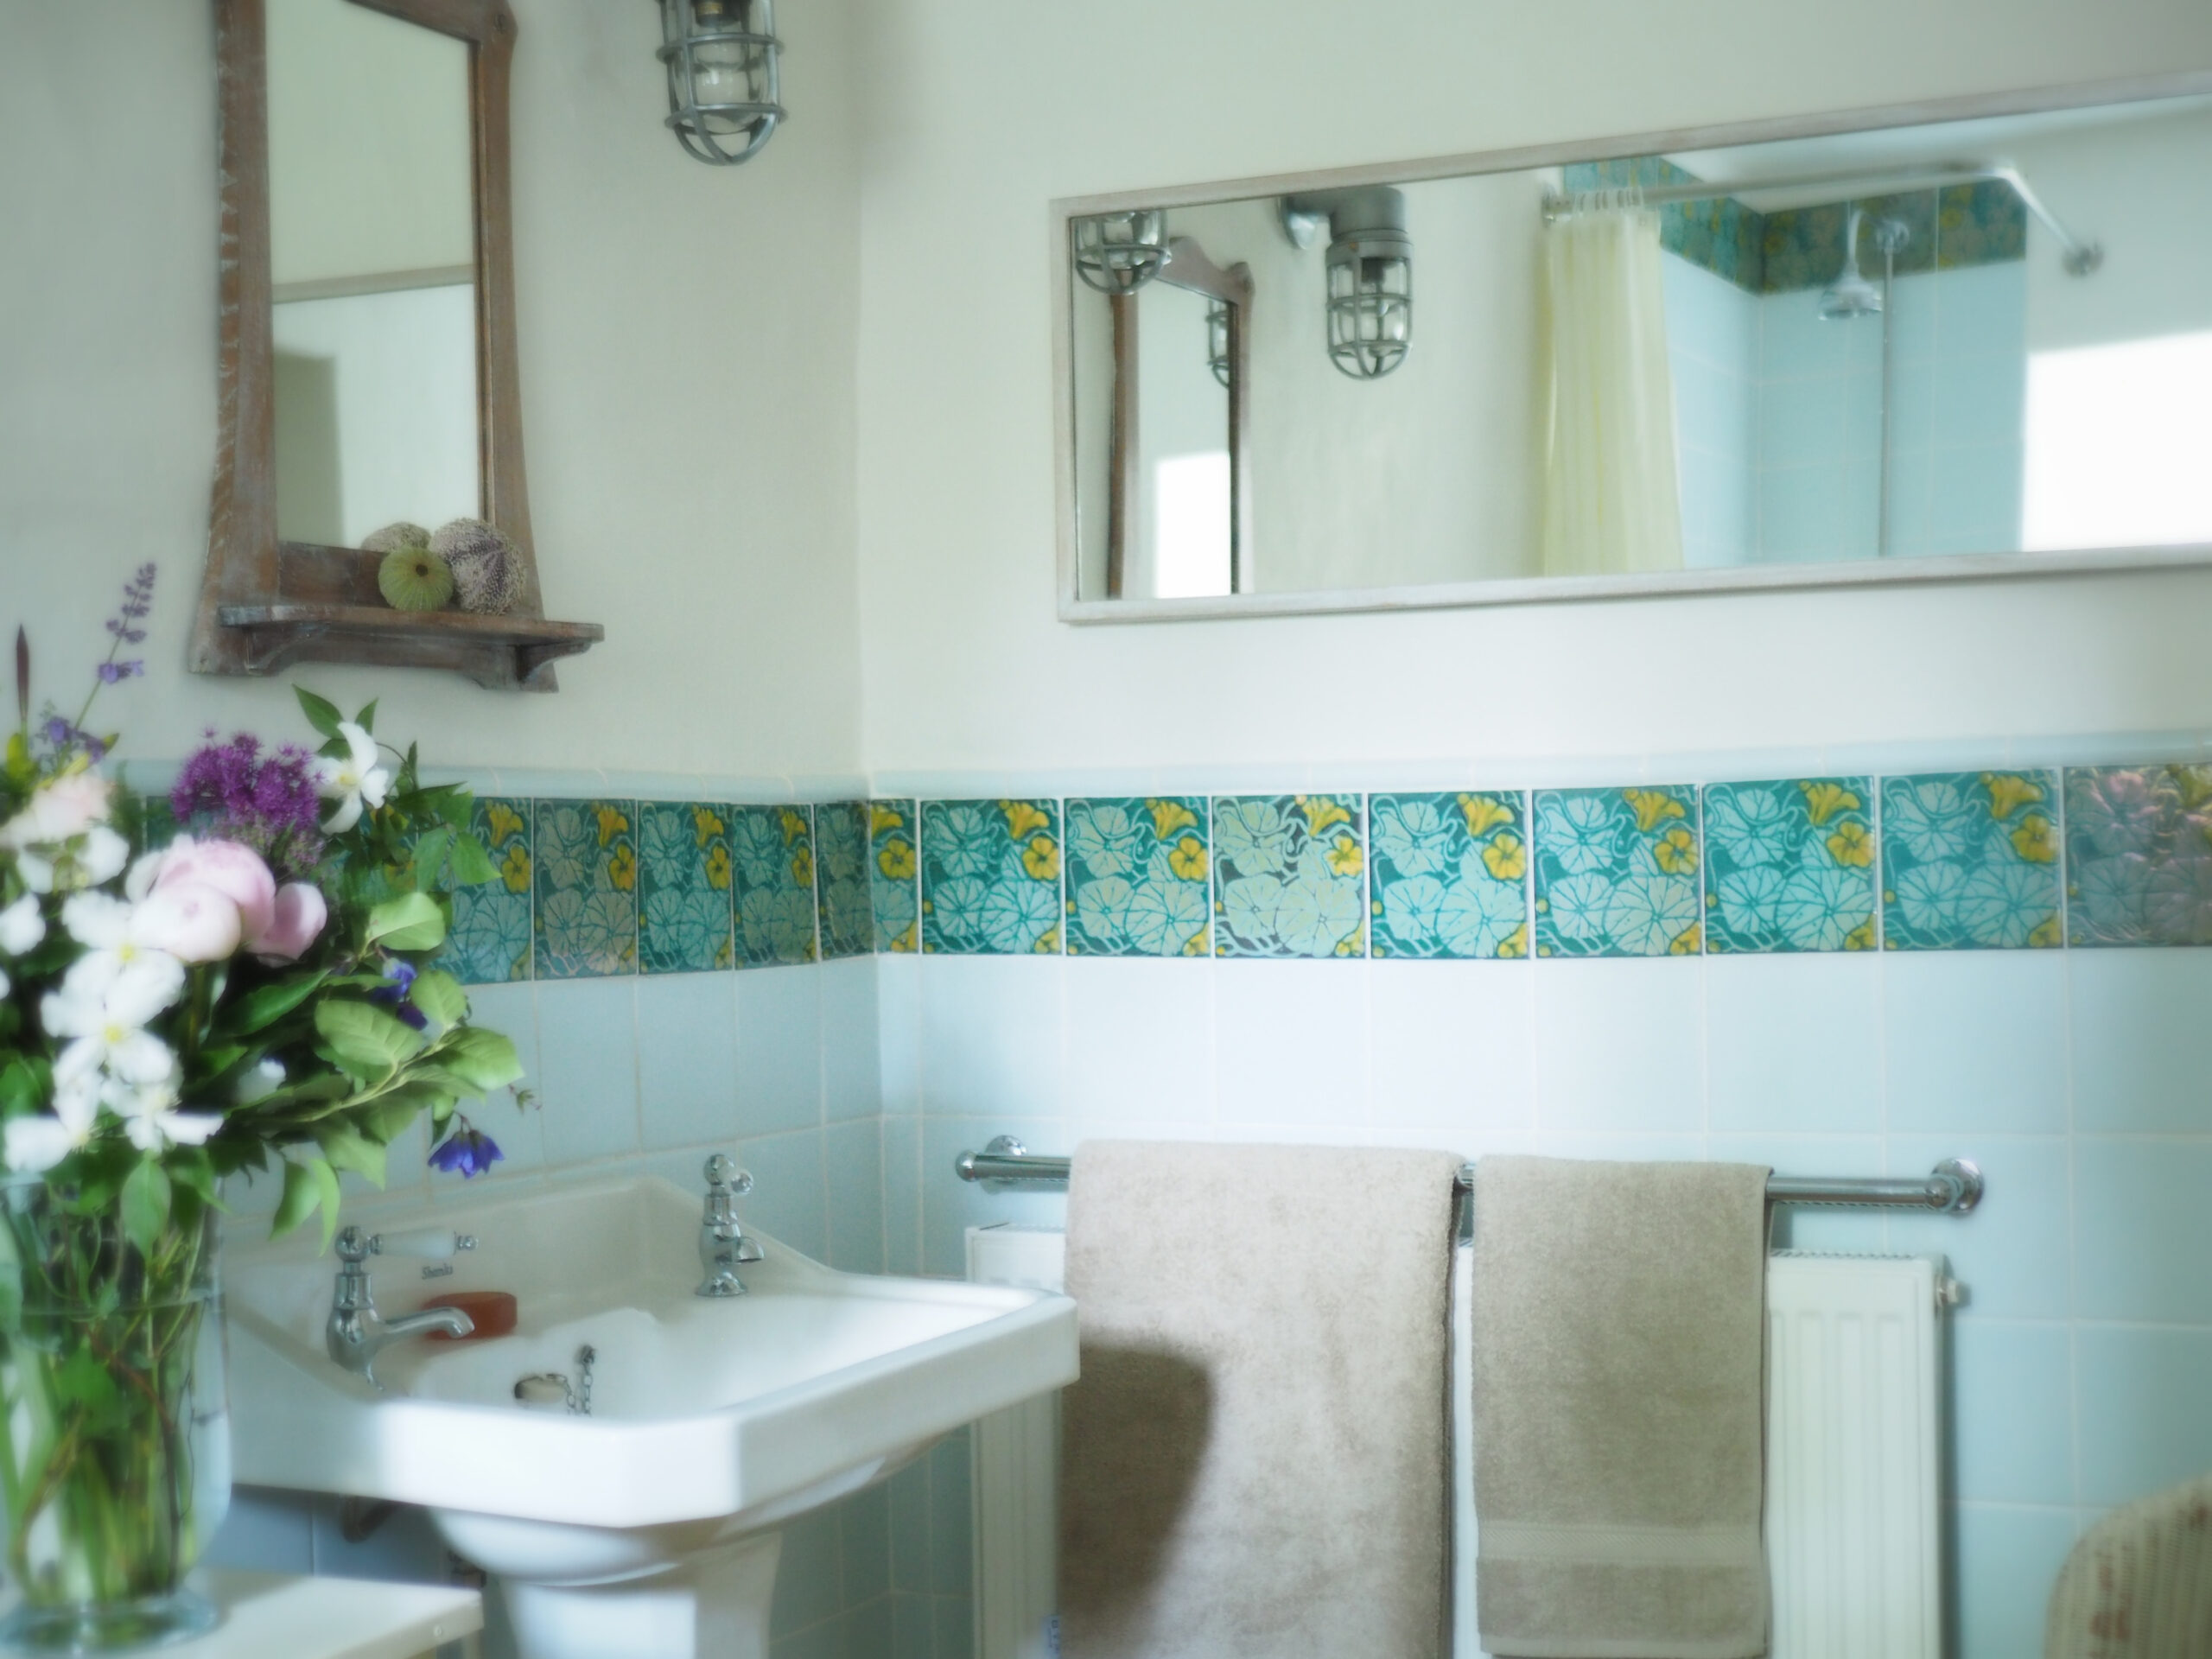 The-hand-made-tiles-are-by-Margery-Clinton-who-lived-here-in-the-1990s